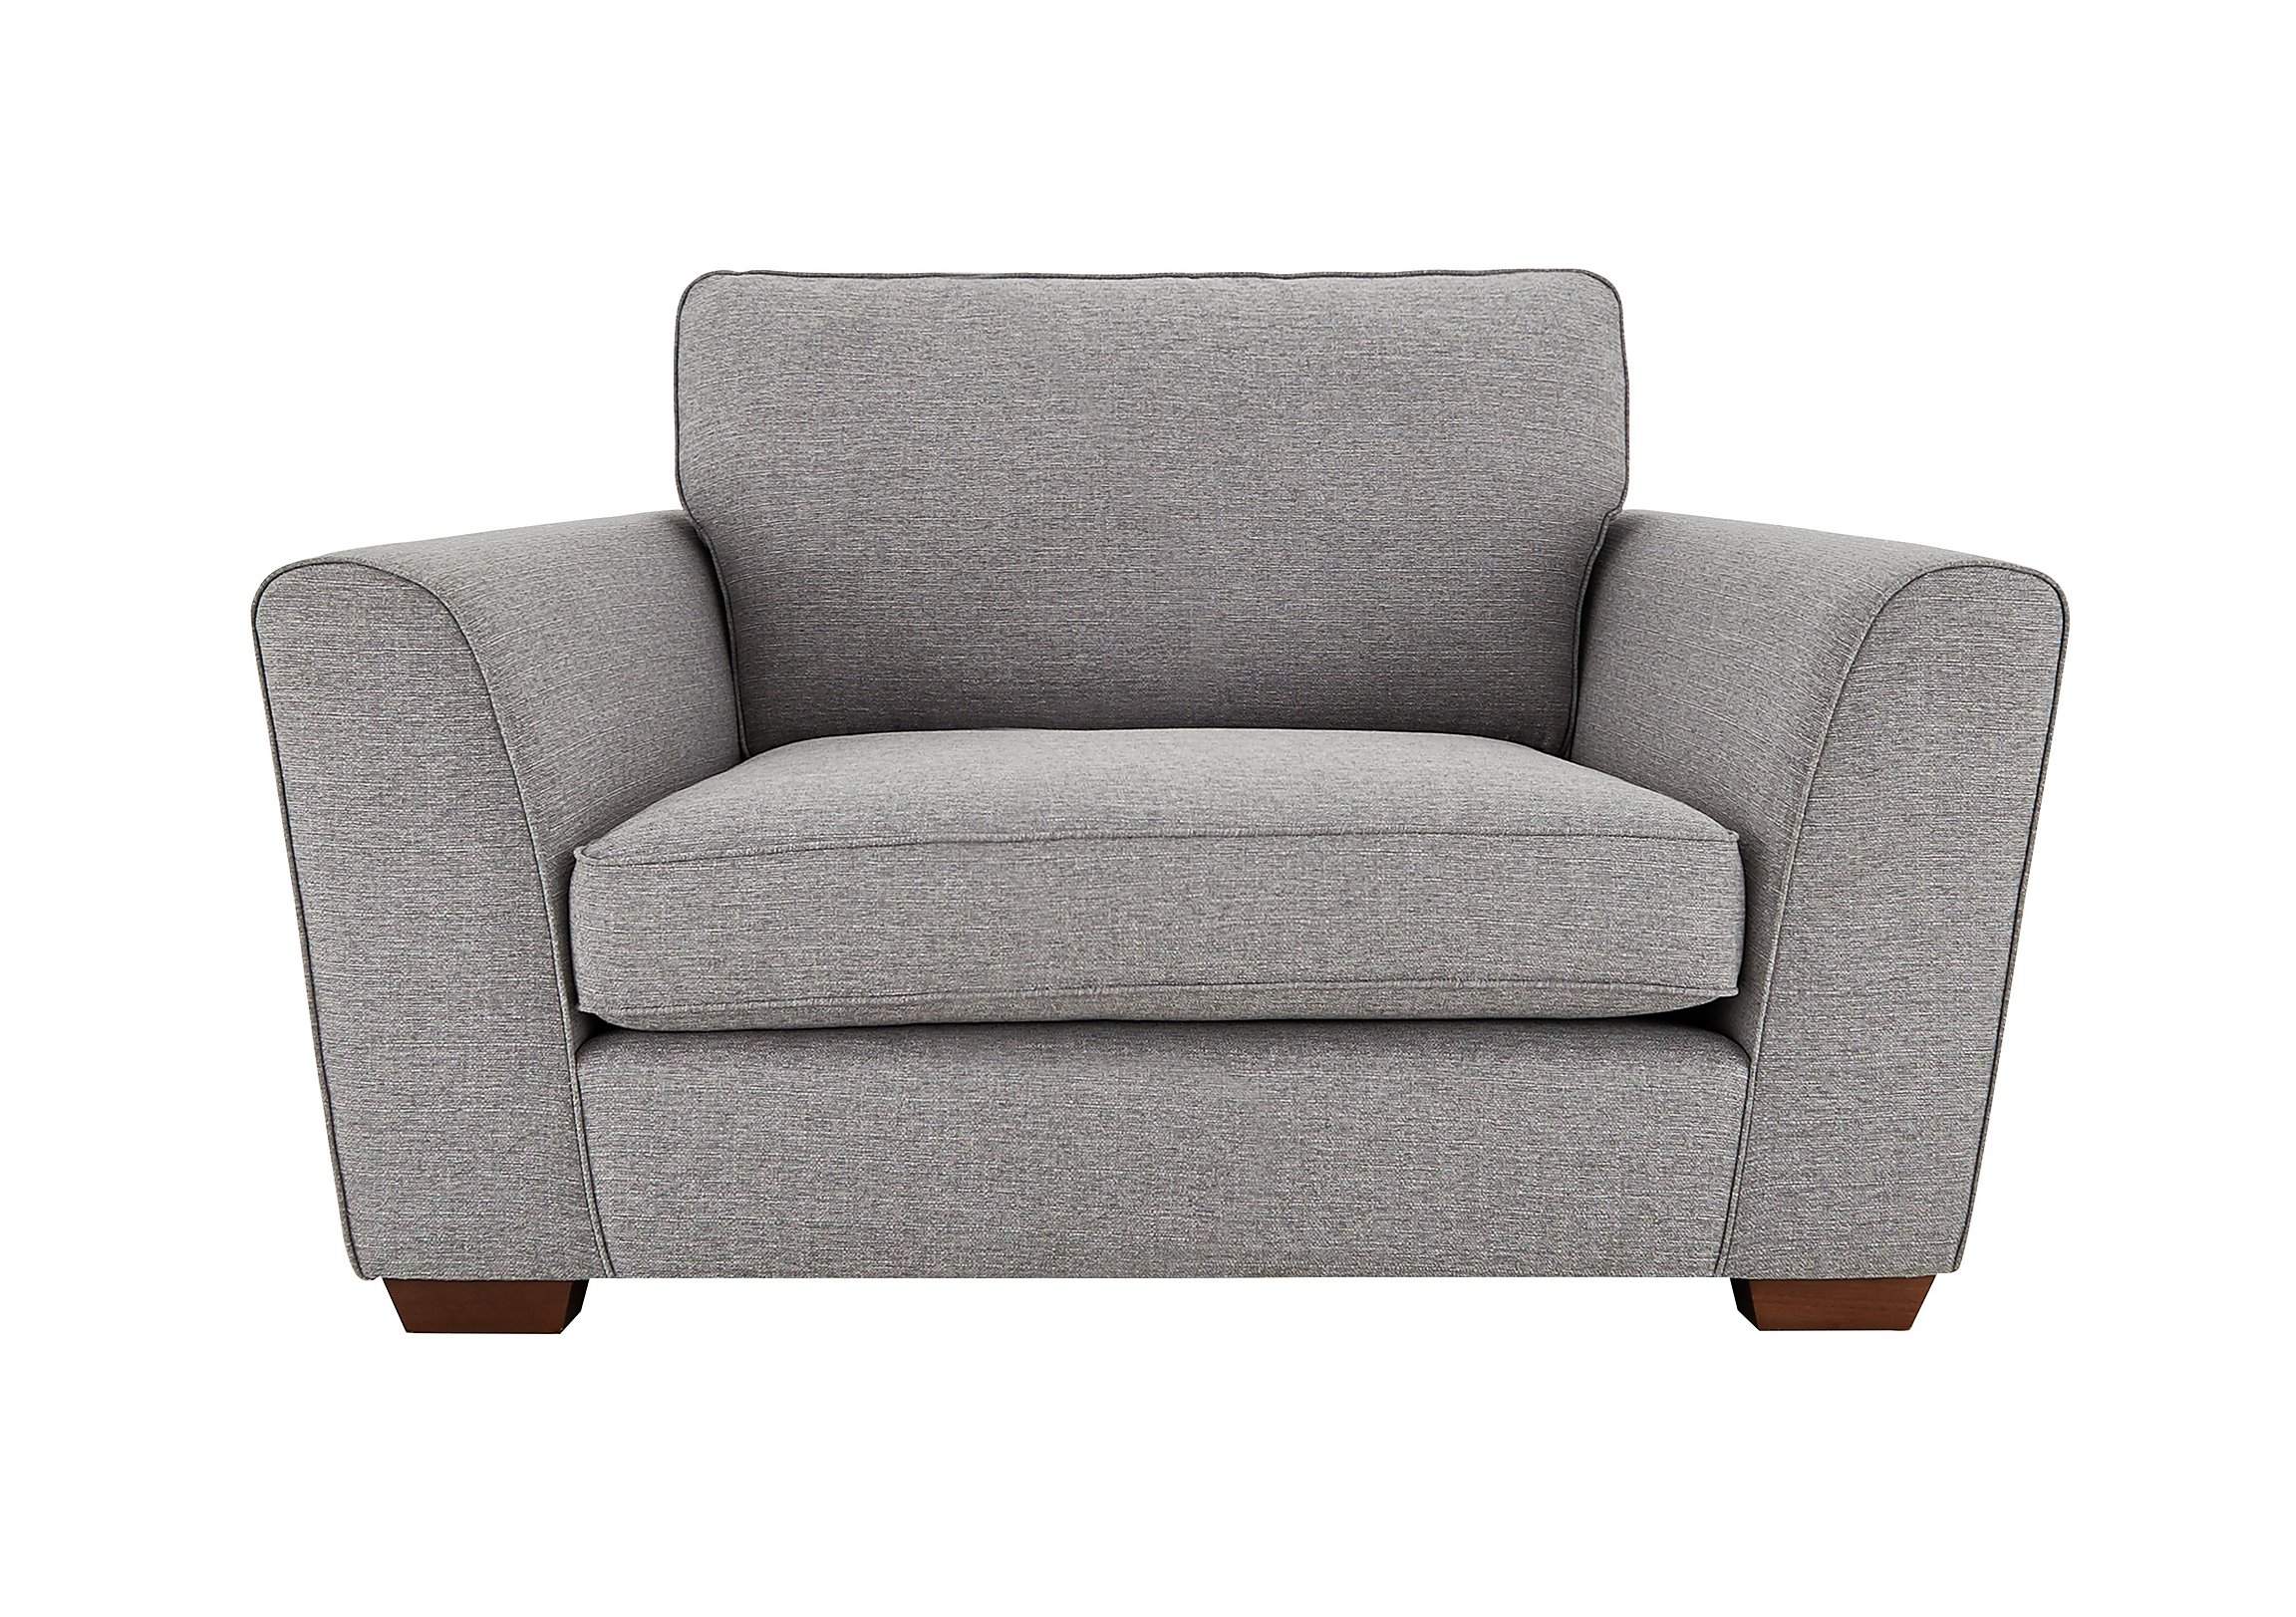 furniture and chair darcy best store ashley product mentor loveseat sw oh dealer